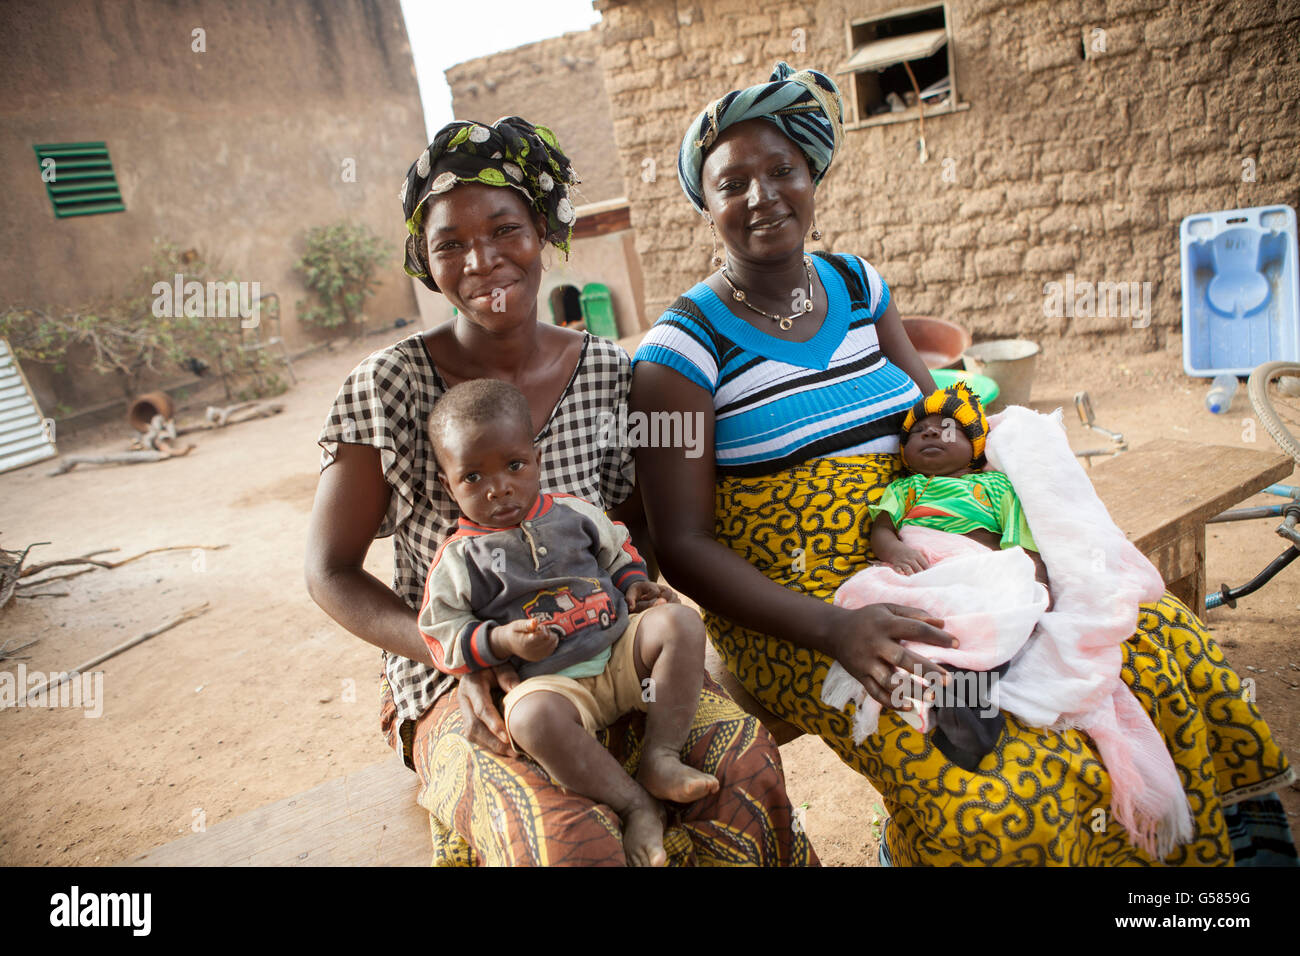 Two women stand together with their children in Niassan Village, Burkina Faso. Stock Photo